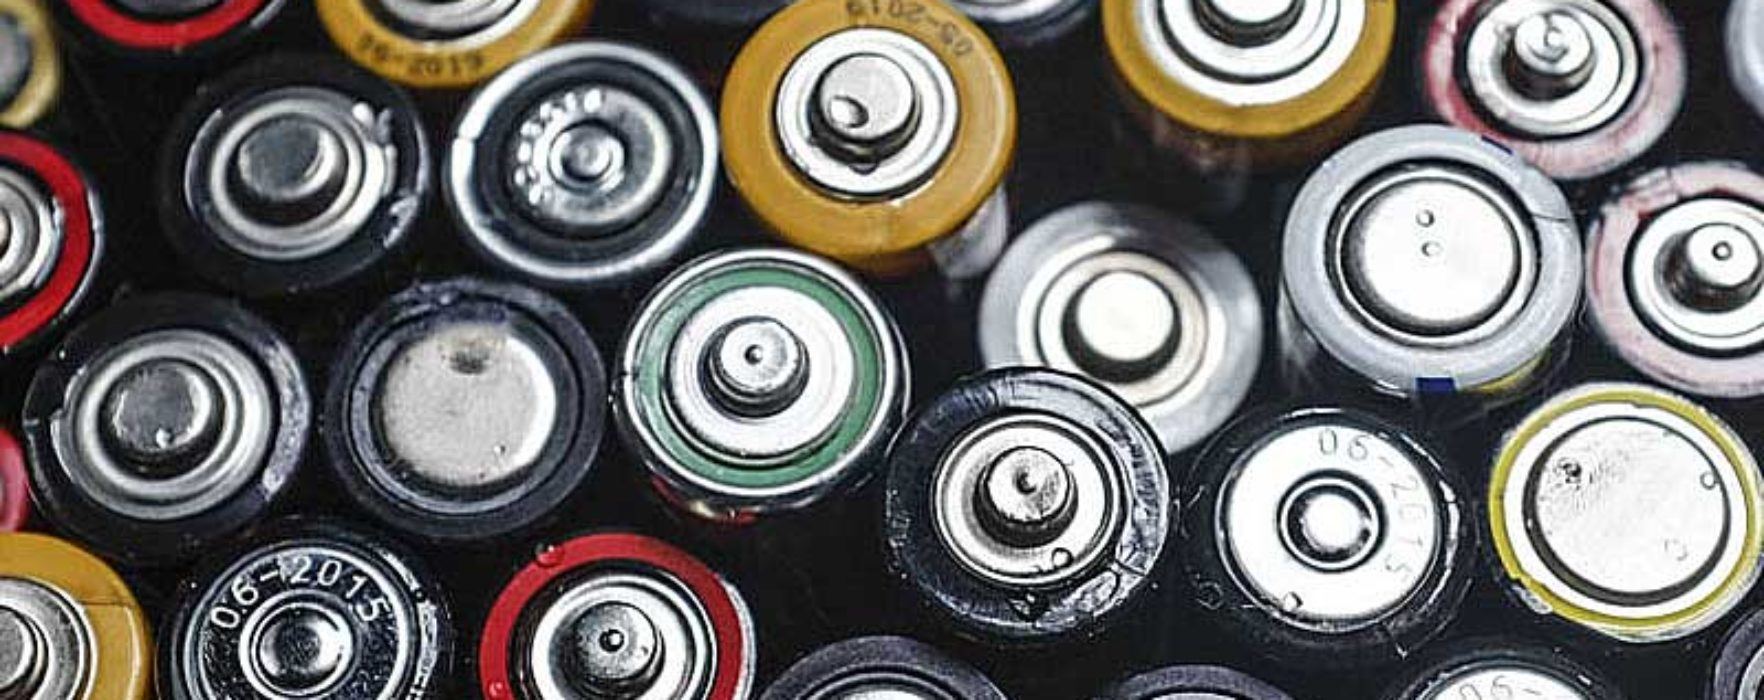 Battery safety even beginners should know